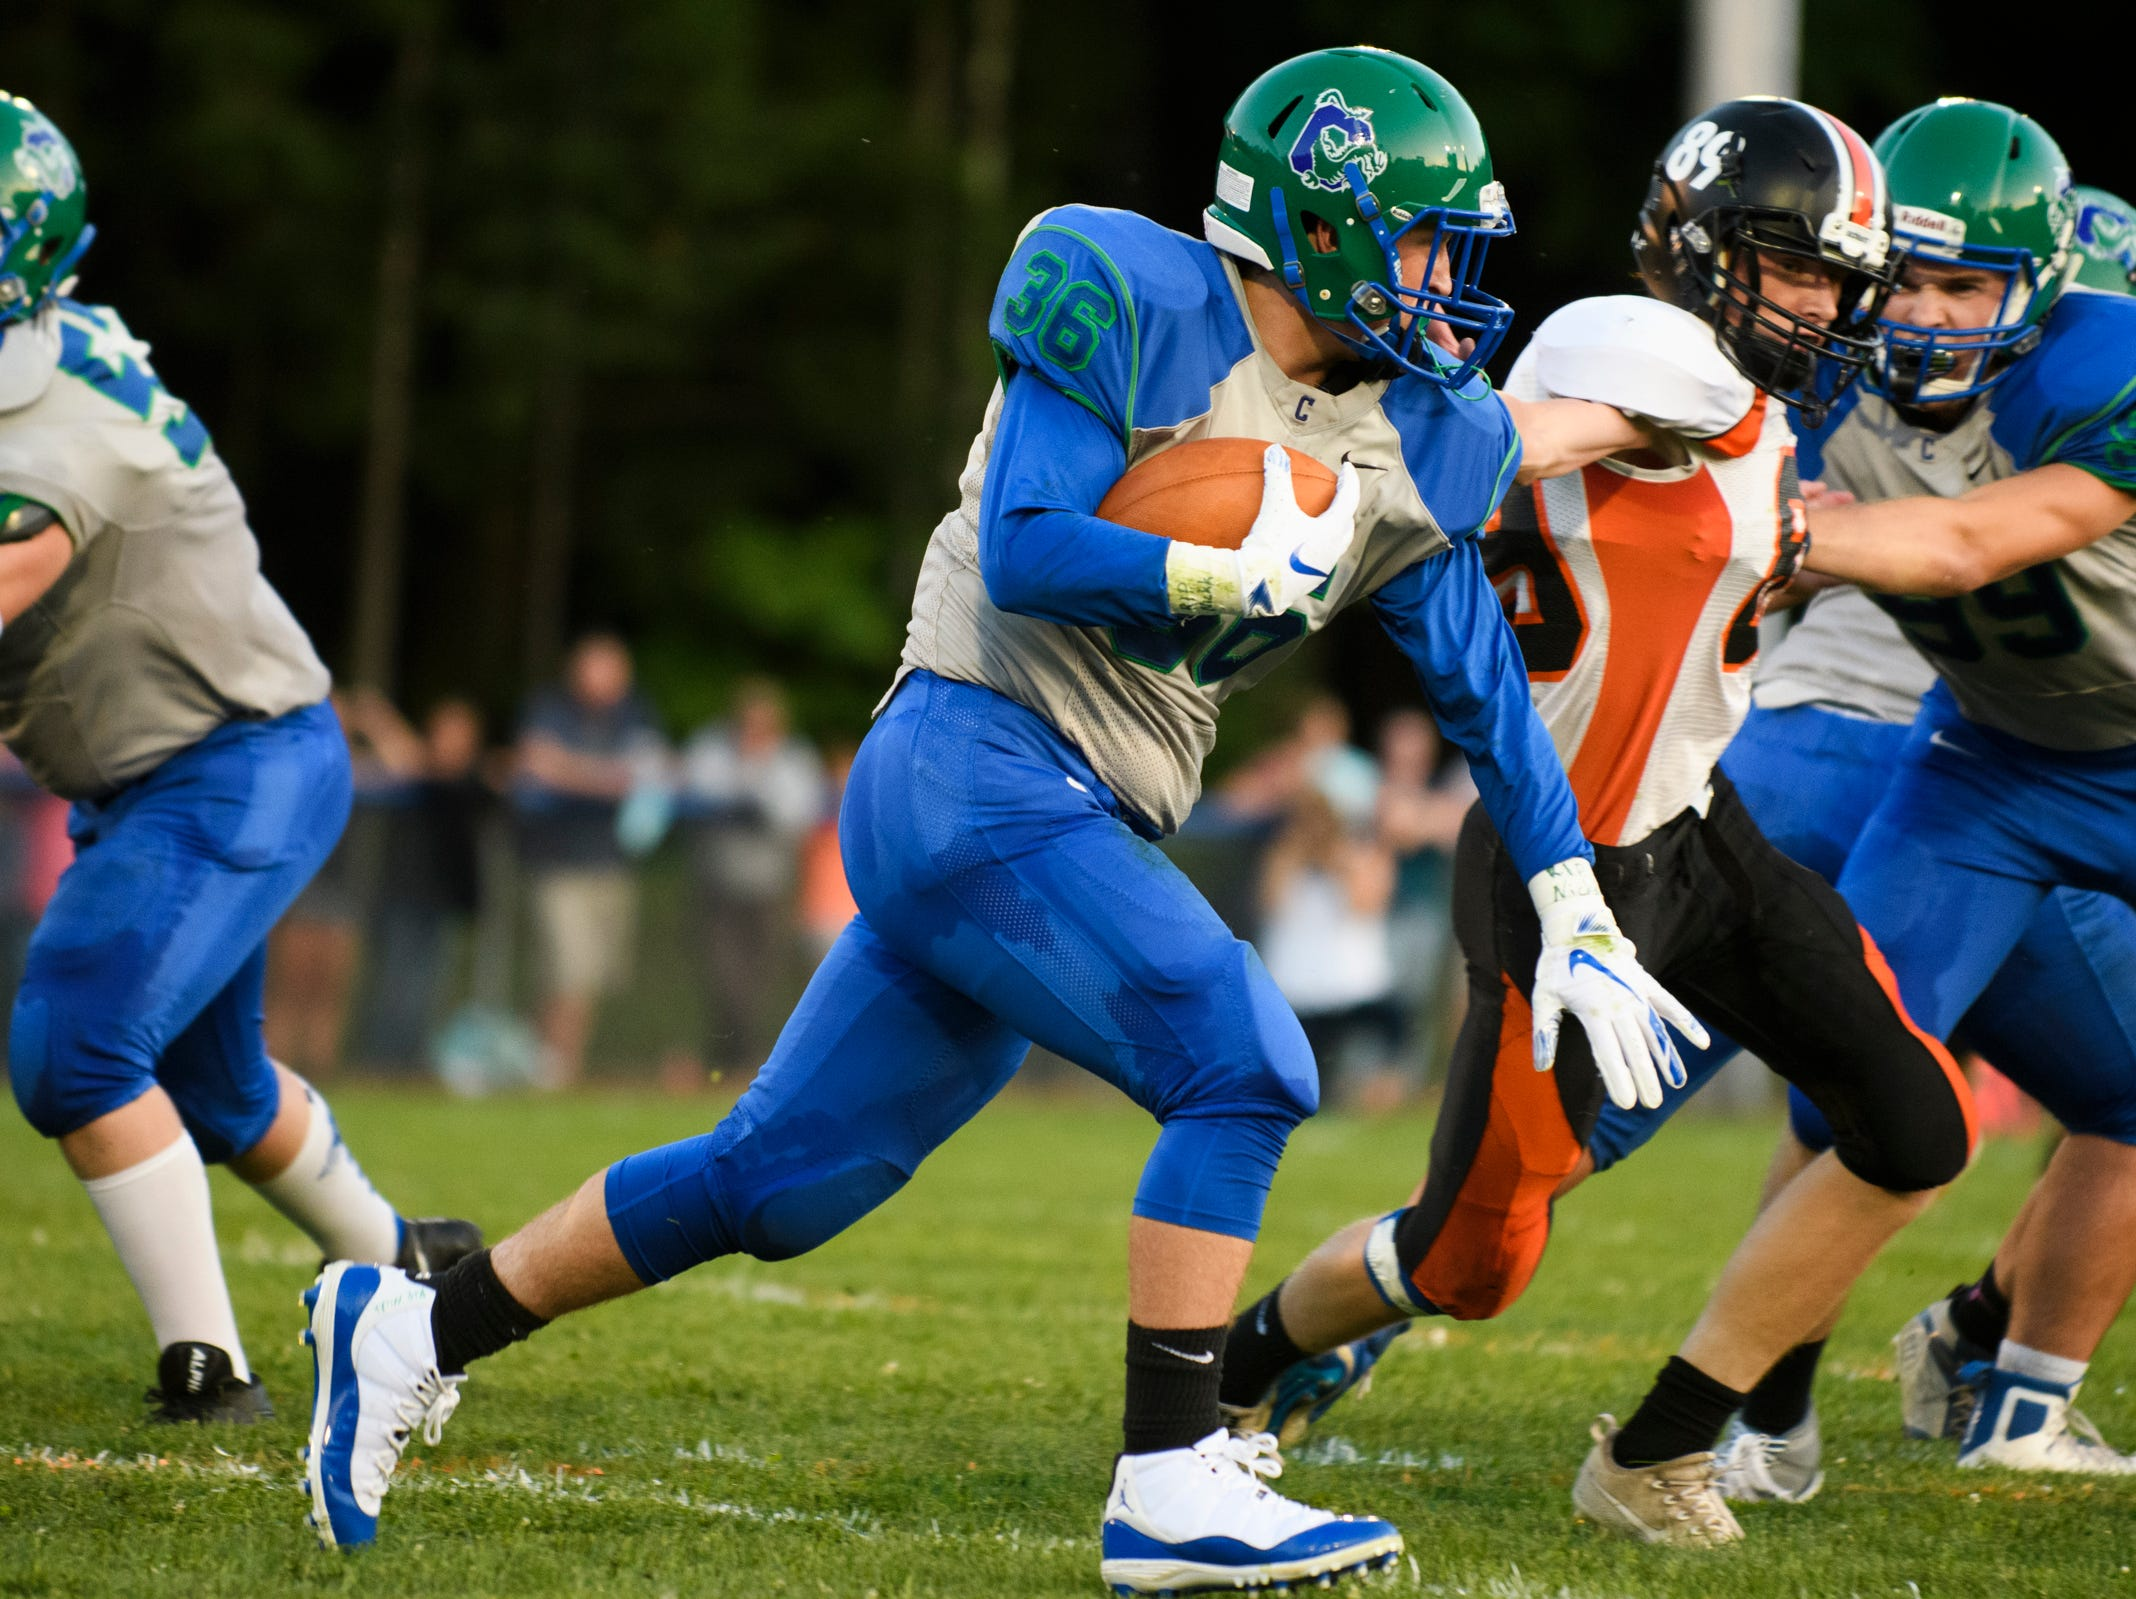 Colchester's Charlie Cusson-Dusharme (36) runs with the ball during the boys high school football game between Middlebury and Colchester at Colchester high school on Friday night August 31, 2018 in Colchester. (BRIAN JENKINS/for the FRESS PRESS)